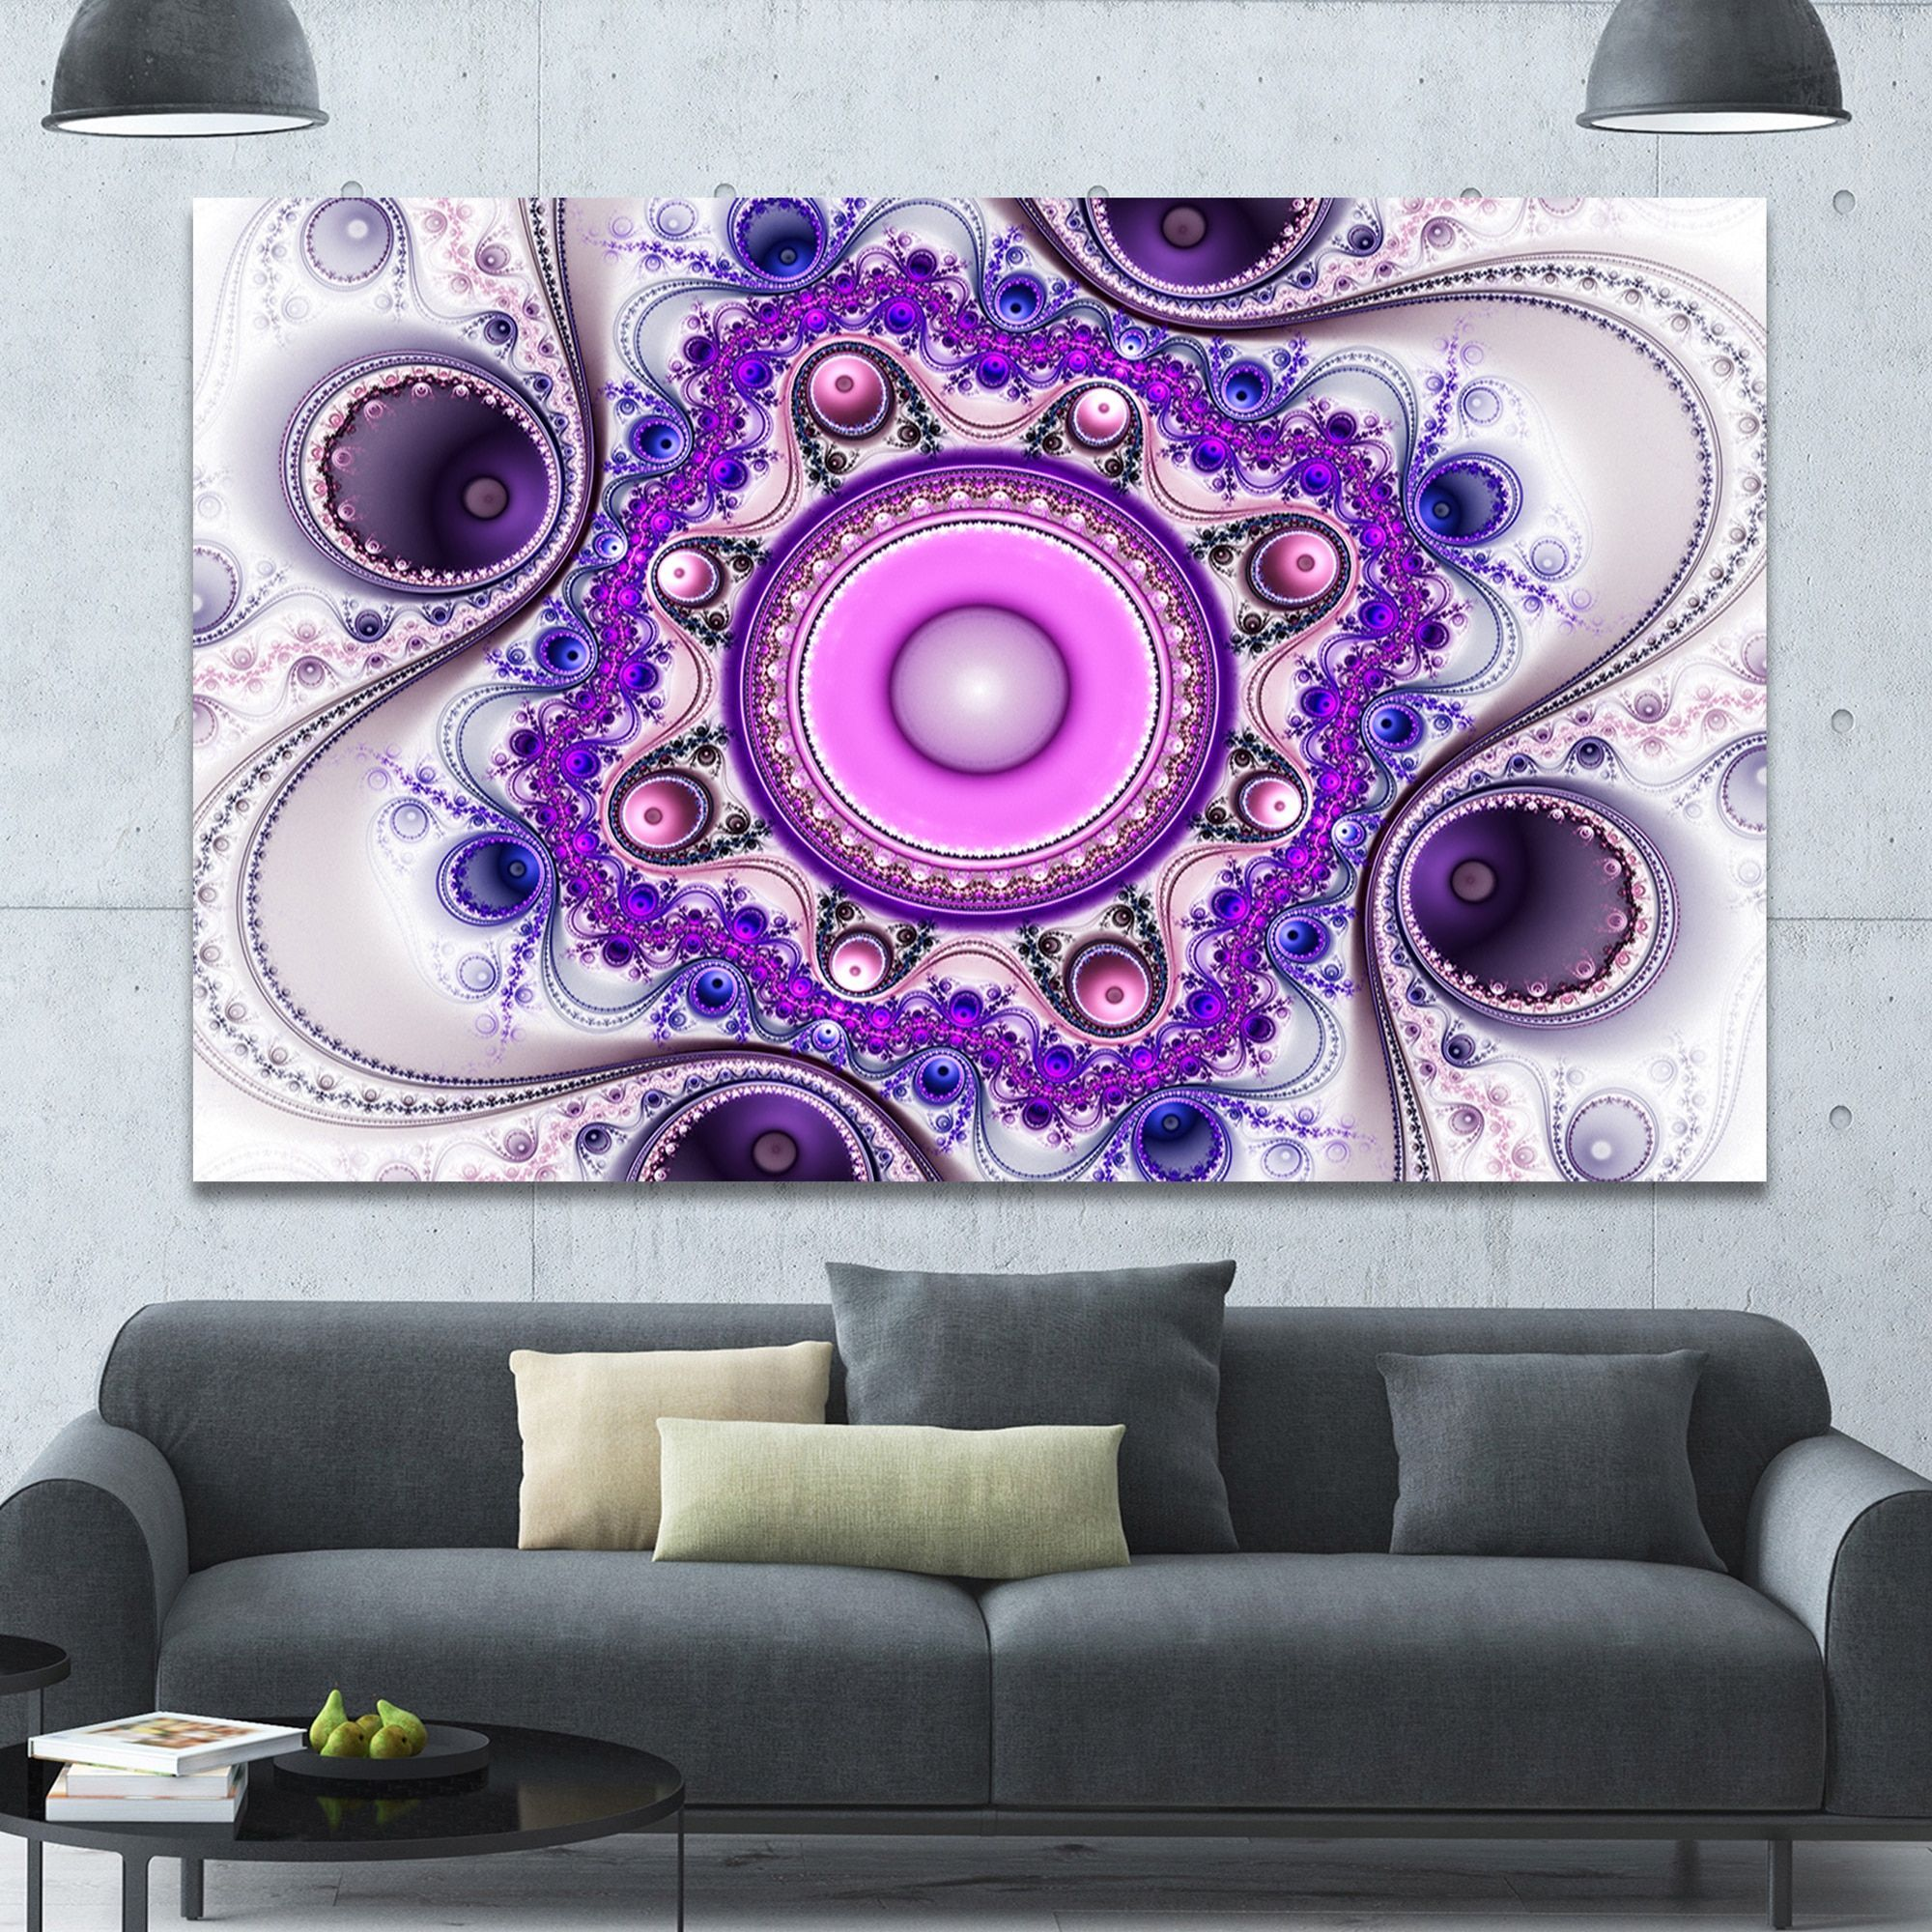 Designart 'Strange Flower with Wavy Curves' Floral Wall Art on Canvas